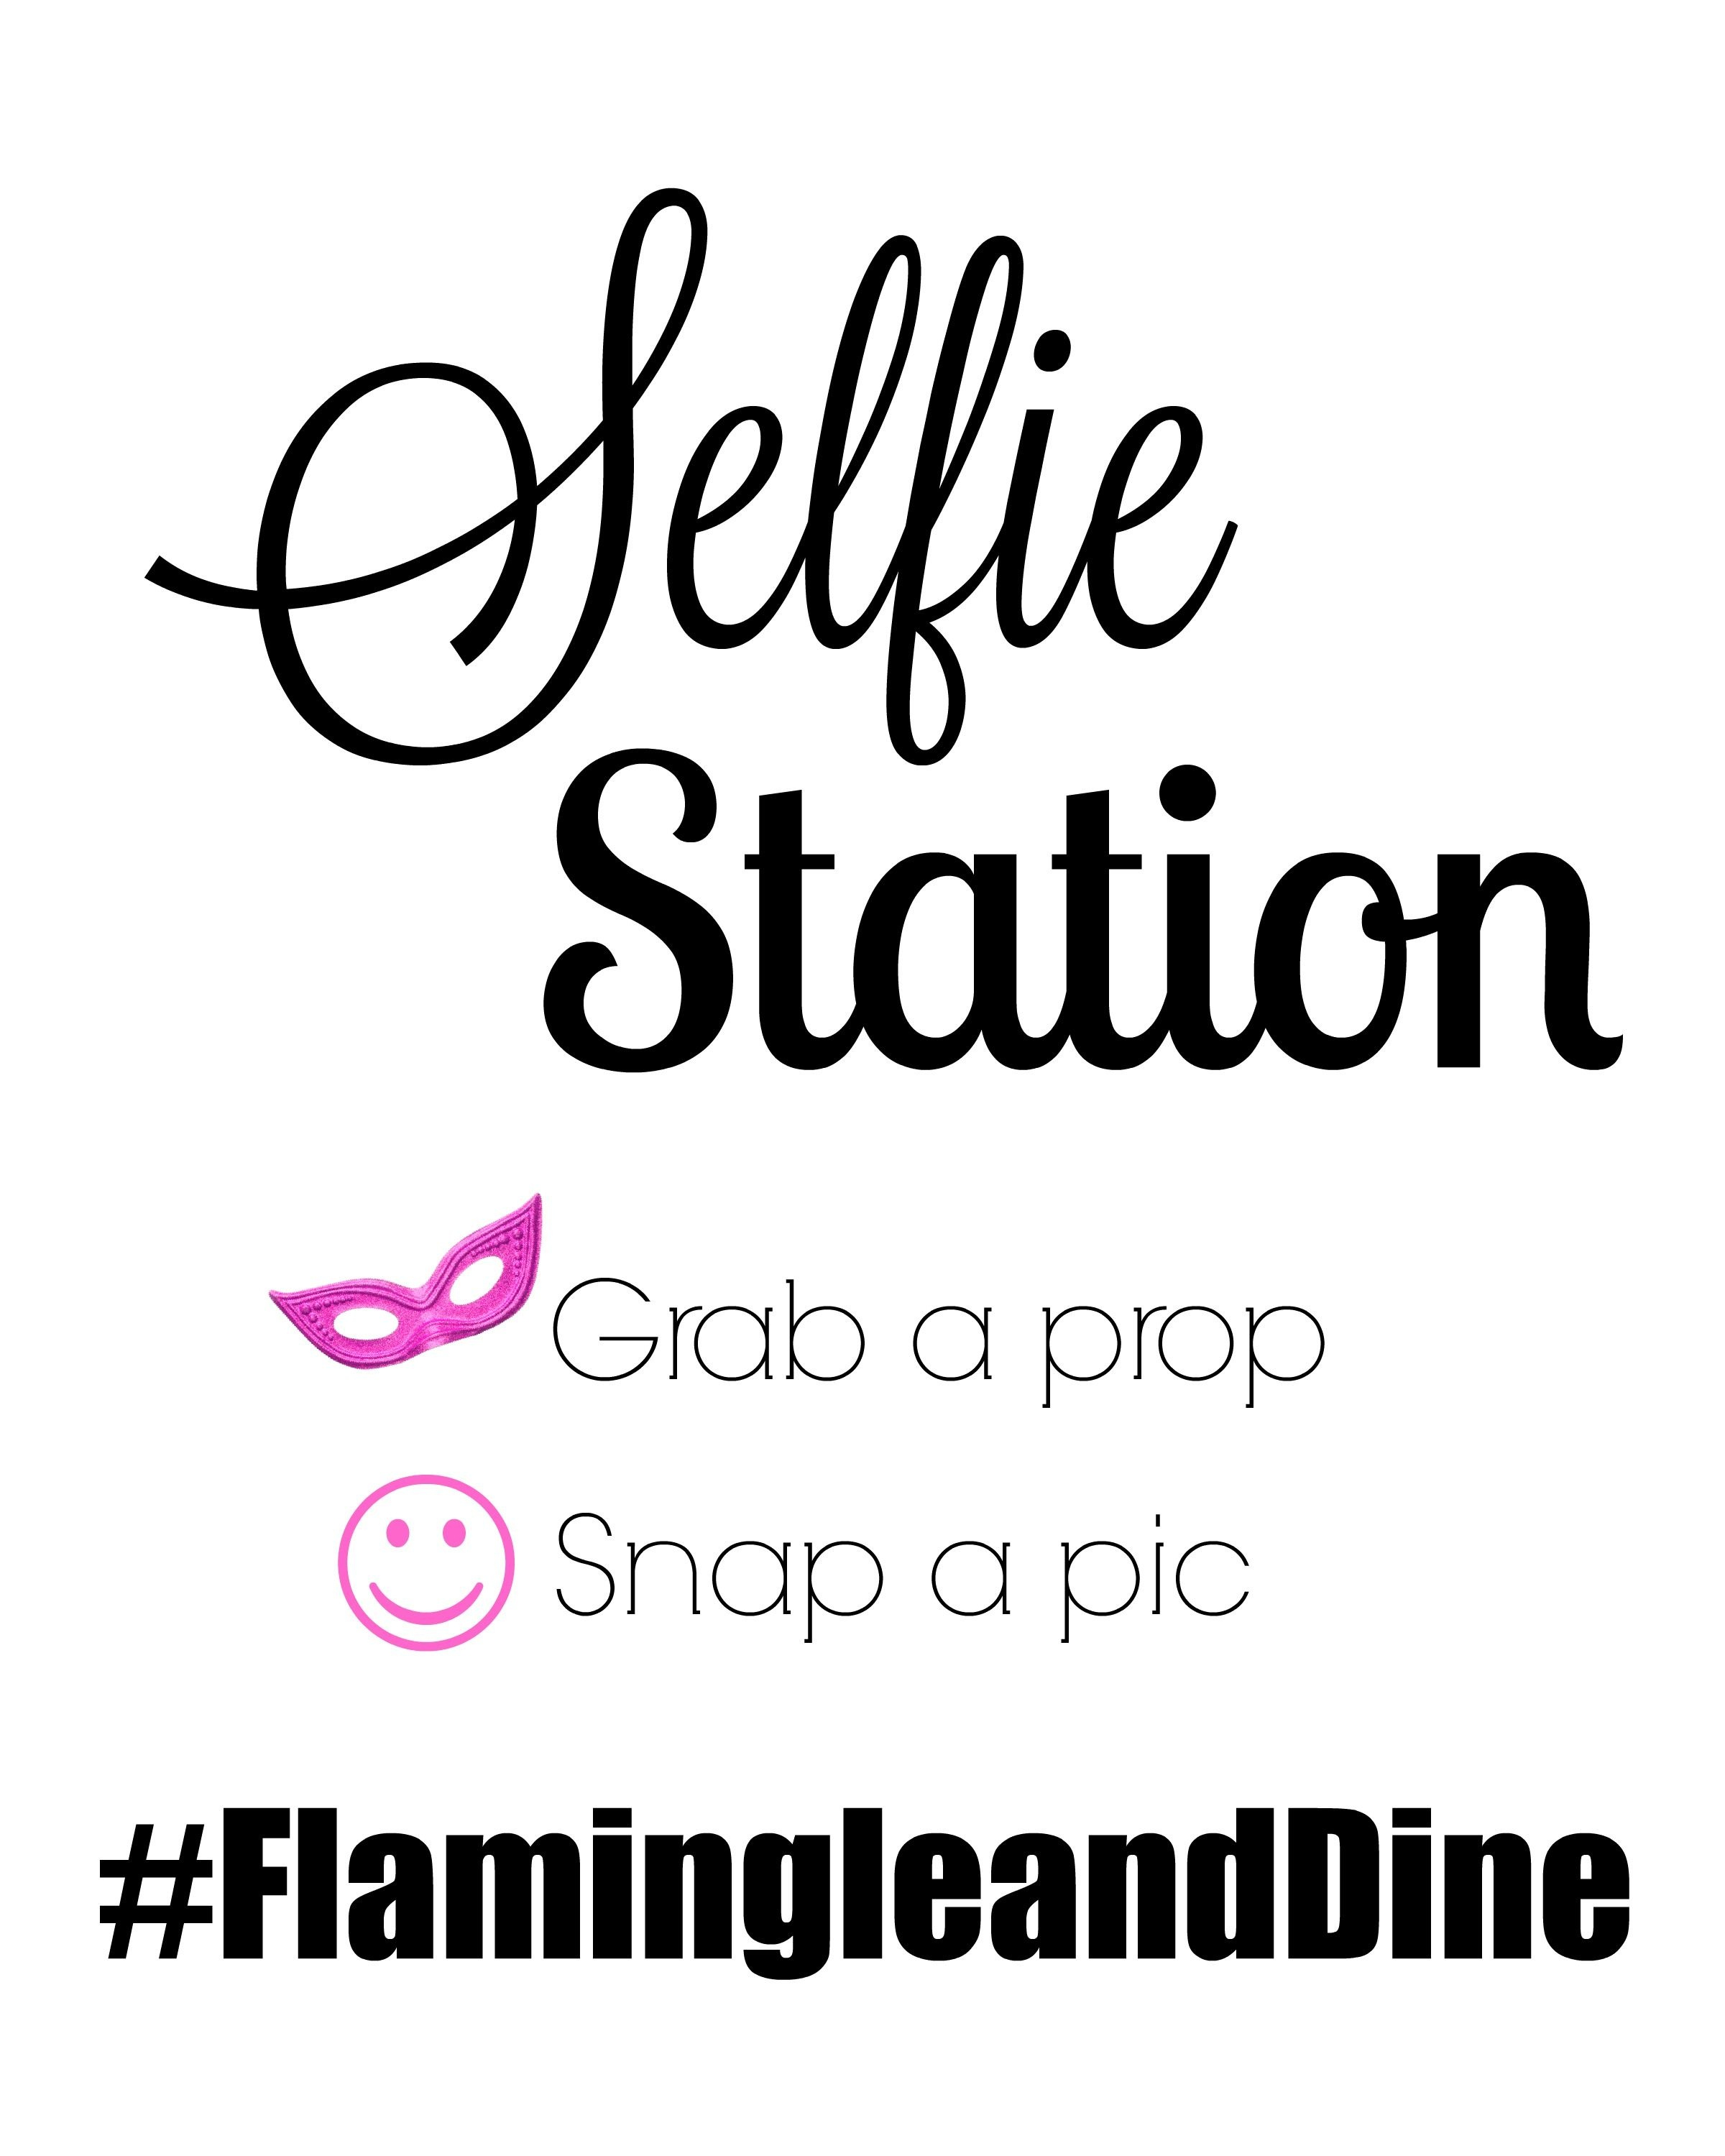 Let's Flamingle Flamingo Party Free Printable Photo Booth Props - Selfie Station Free Printable